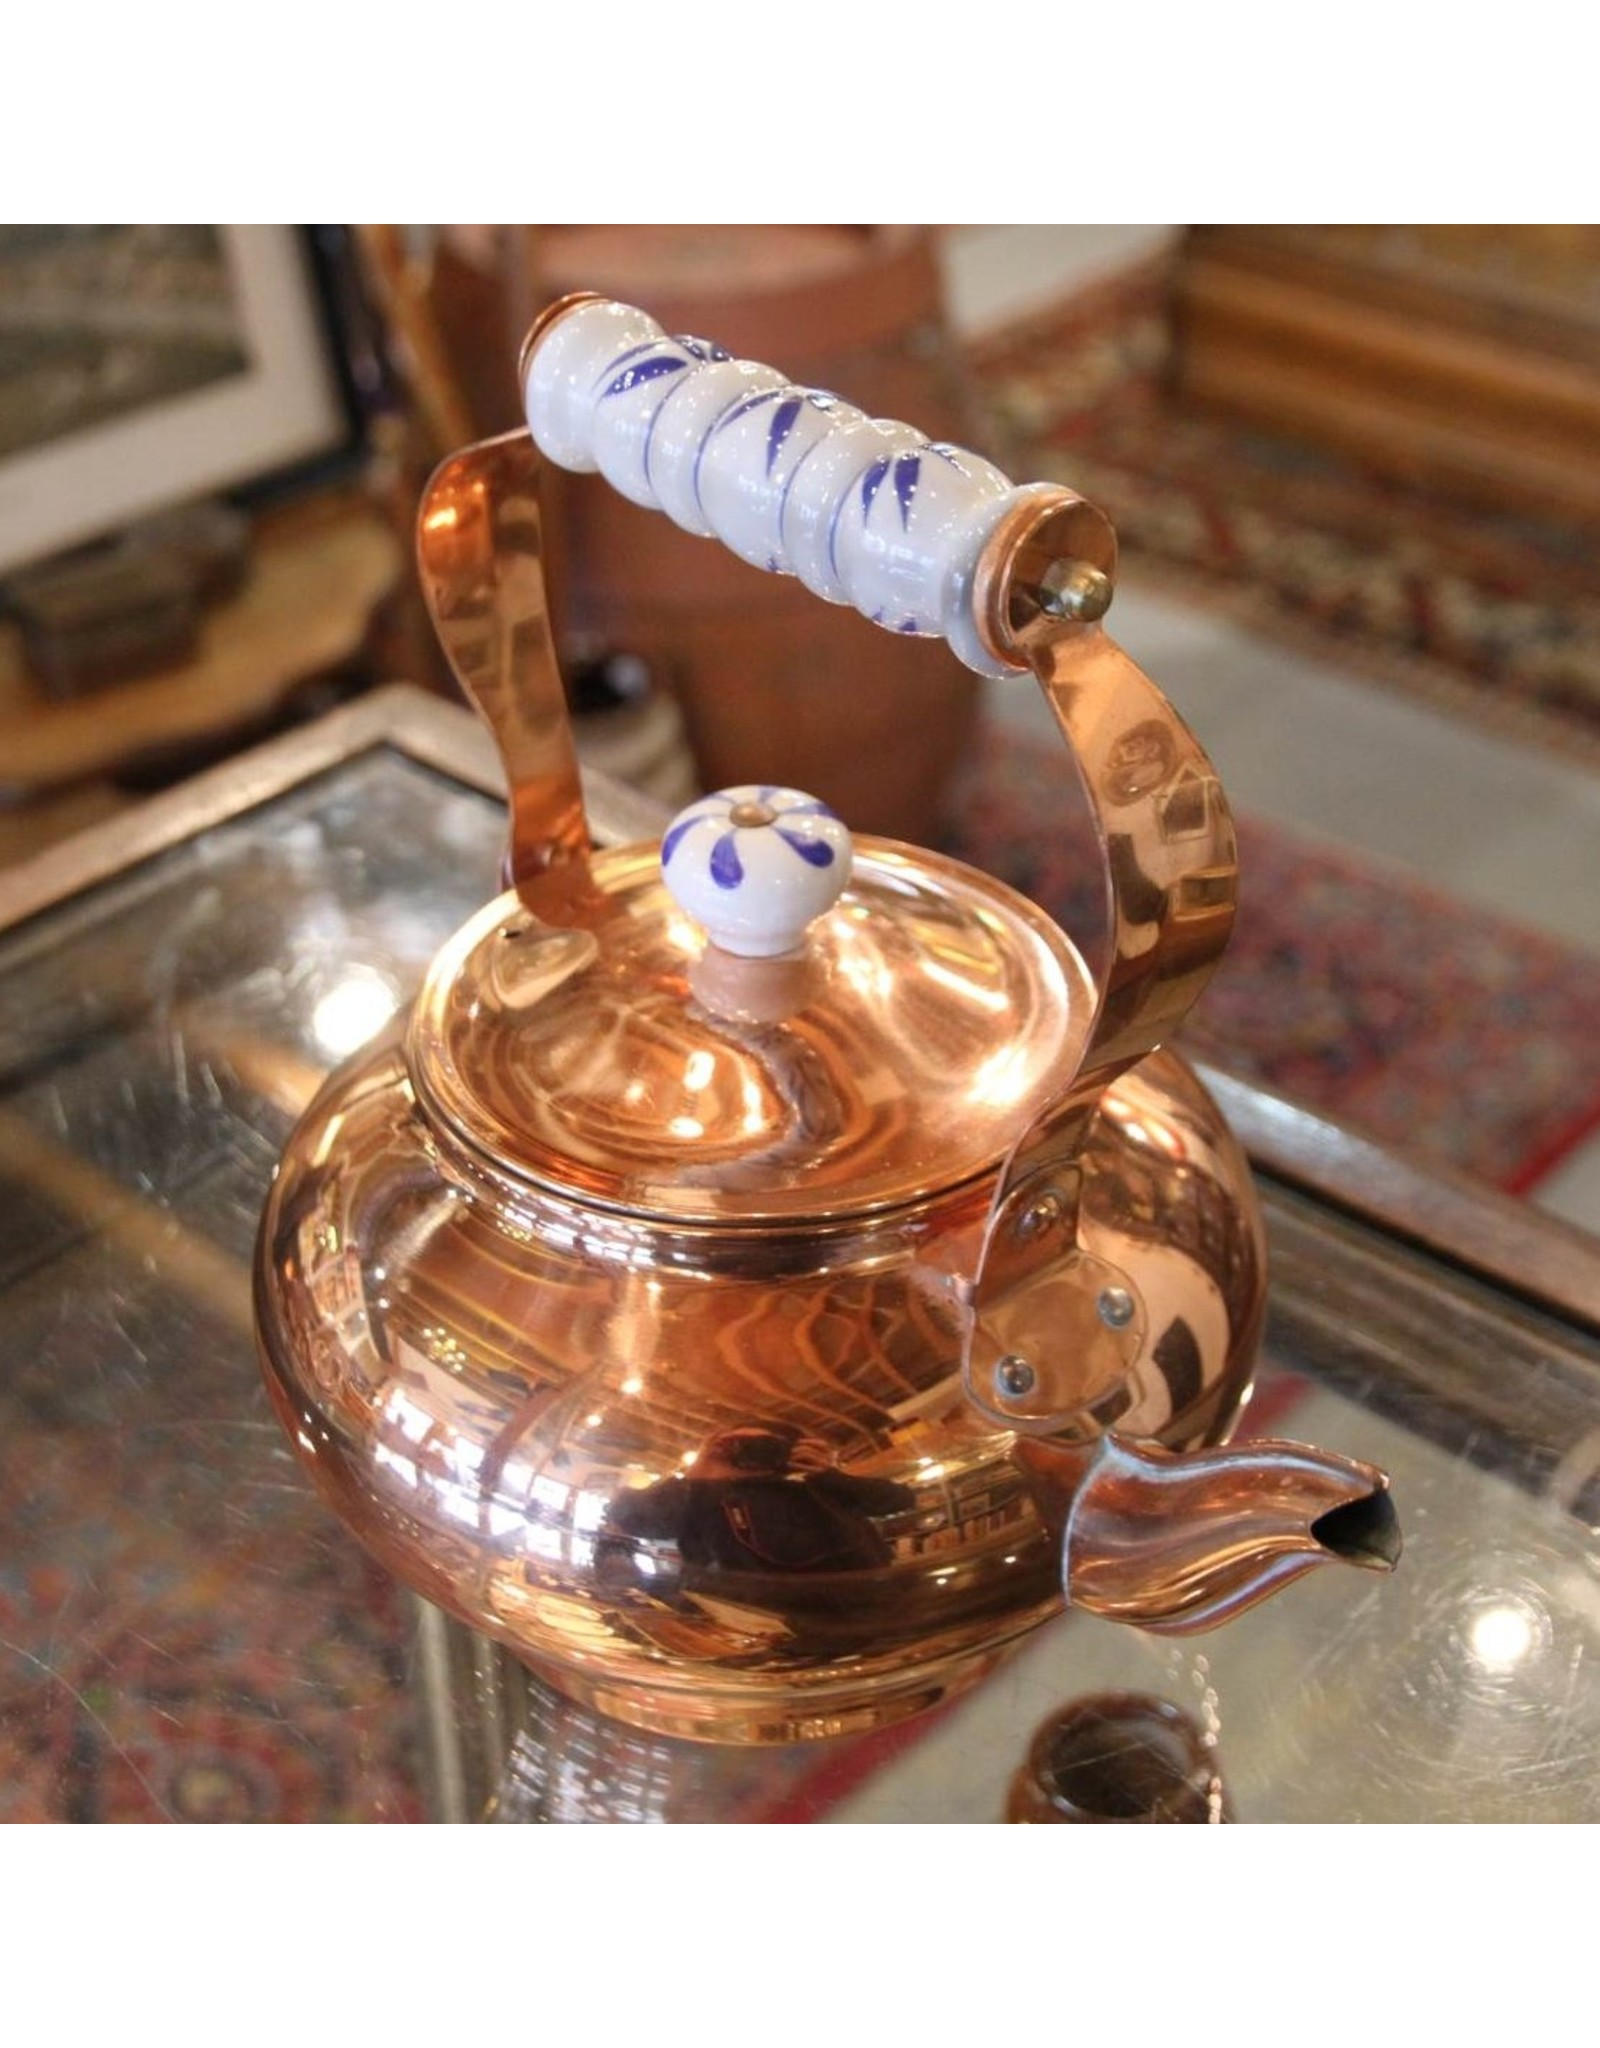 Kettle - copper with pottery handle